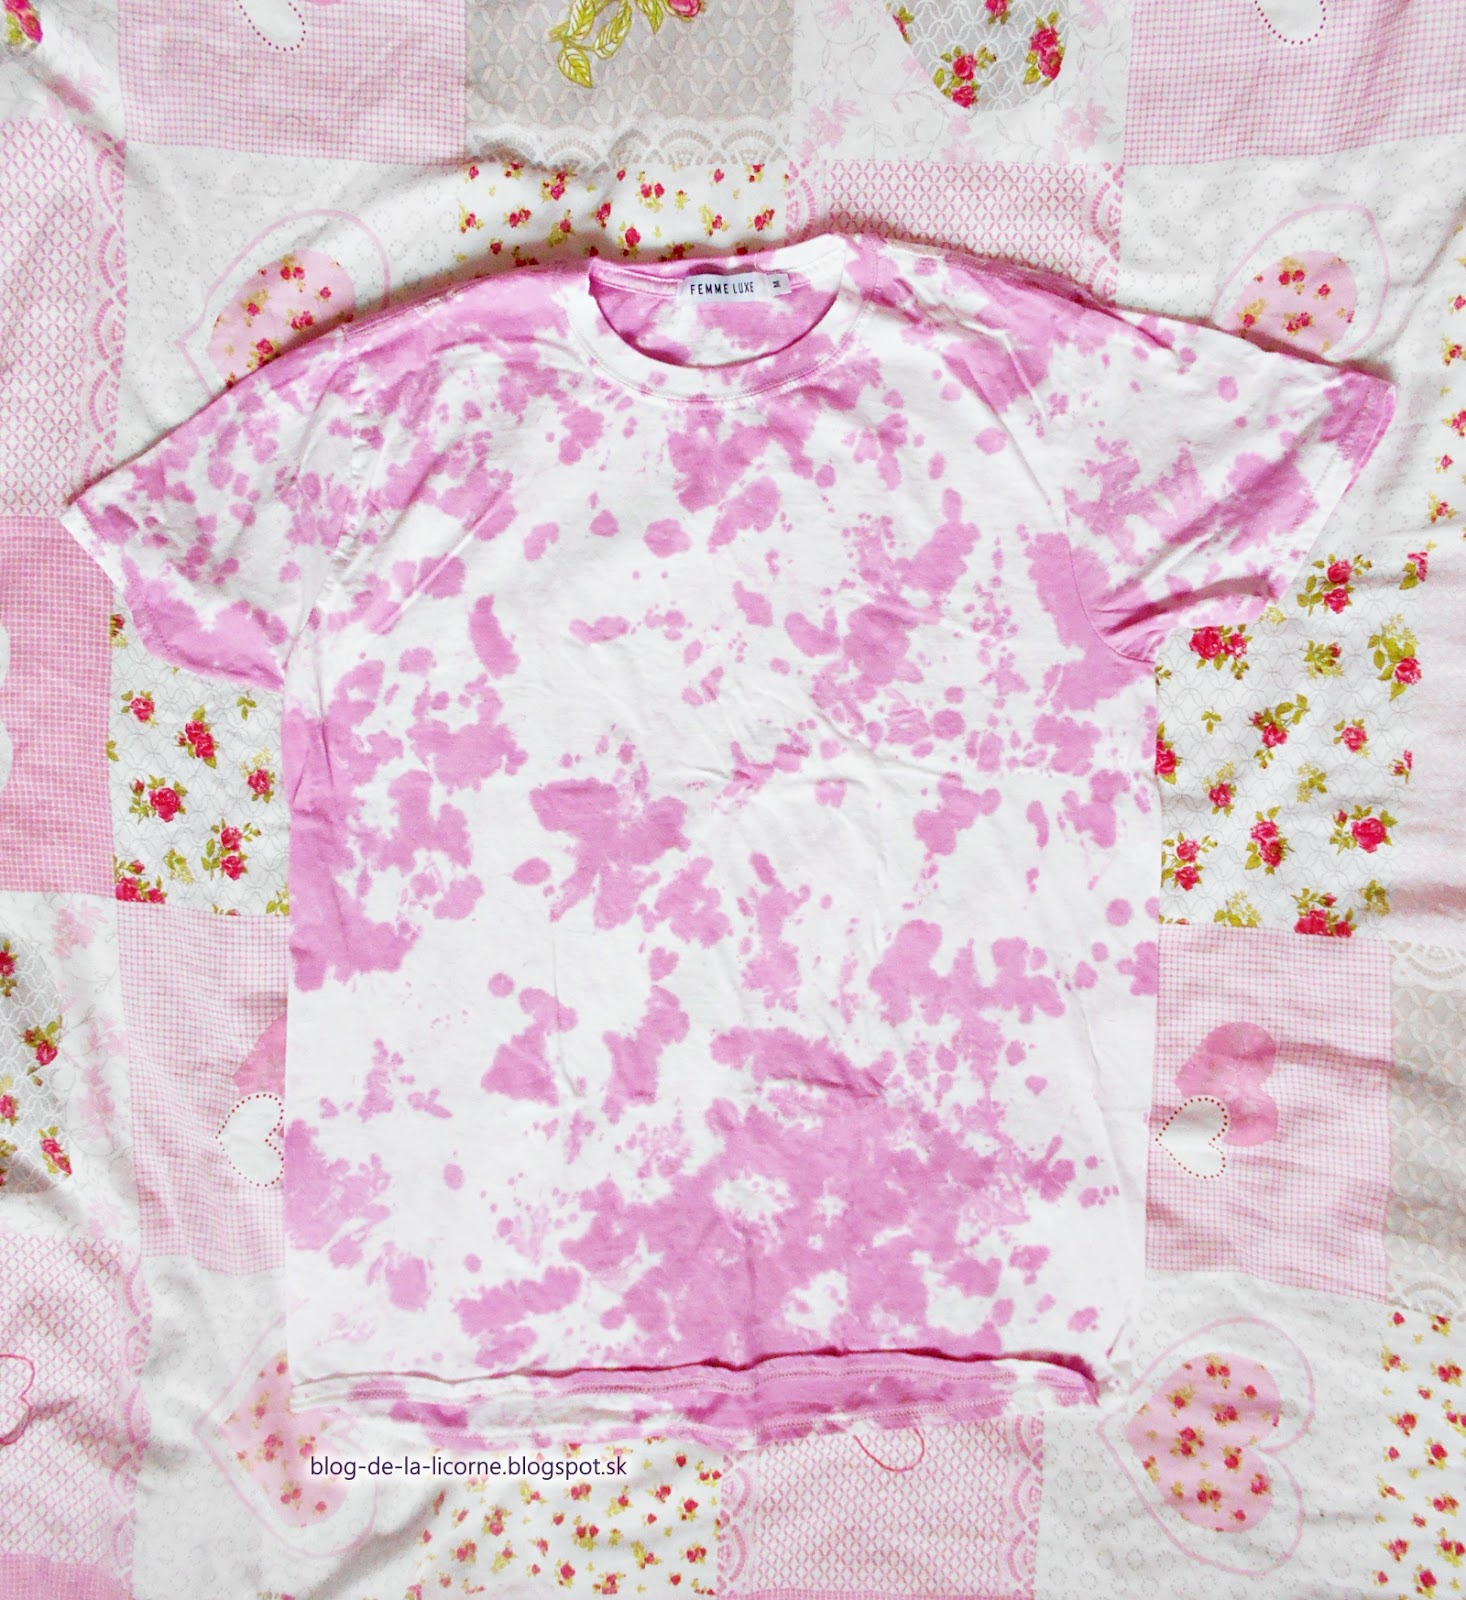 Femme Luxe Finery Pink Tie Dye Oversized T-Shirt Veda review